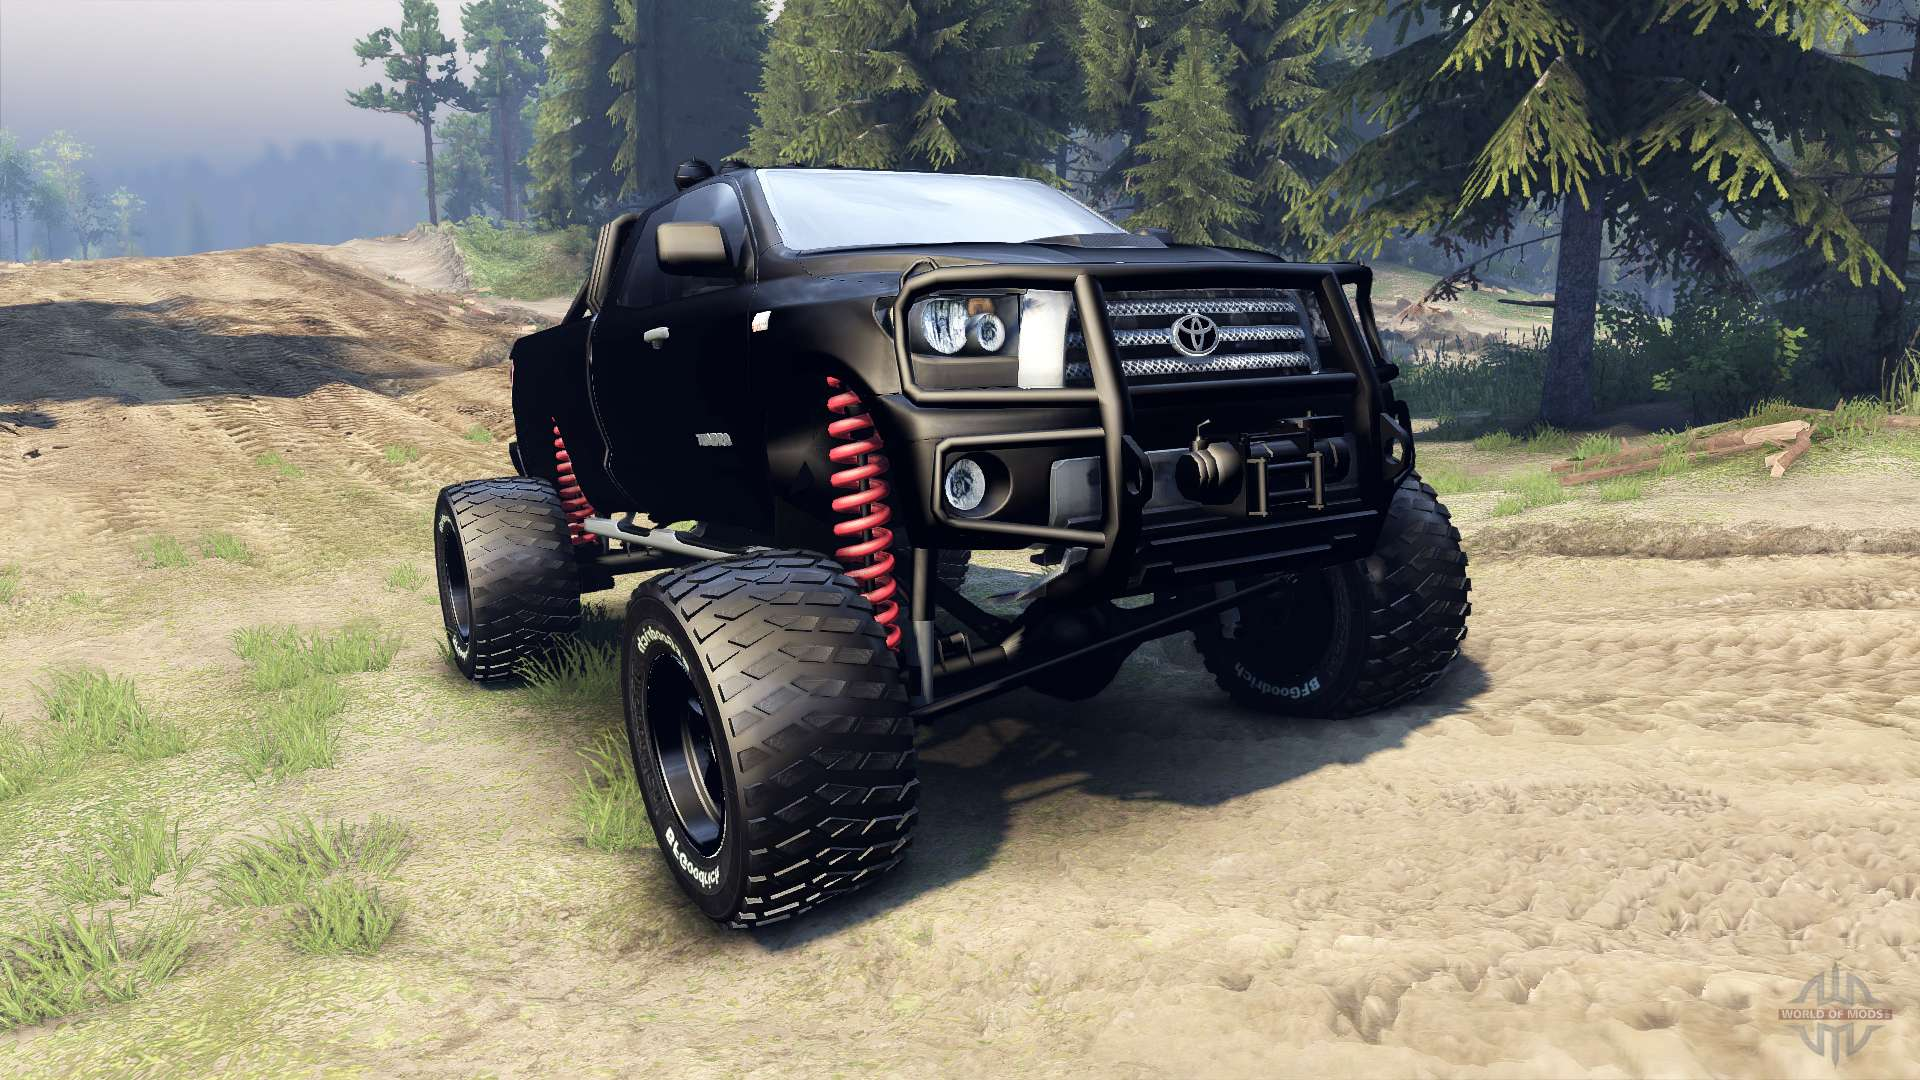 1 8 monster truck with 6735 Toyota Tundra Off Road on 60 Absolutely Stunning Truck Wallpapers In Hd as well Lego Monster Truck Set 60180 as well The Bikini Contest In The Party Zone A Charming 3 besides Alfa Romeo Brera Stock 81a561b8 7652 4b97 98b3 0e8a50398424 furthermore 6735 Toyota Tundra Off Road.